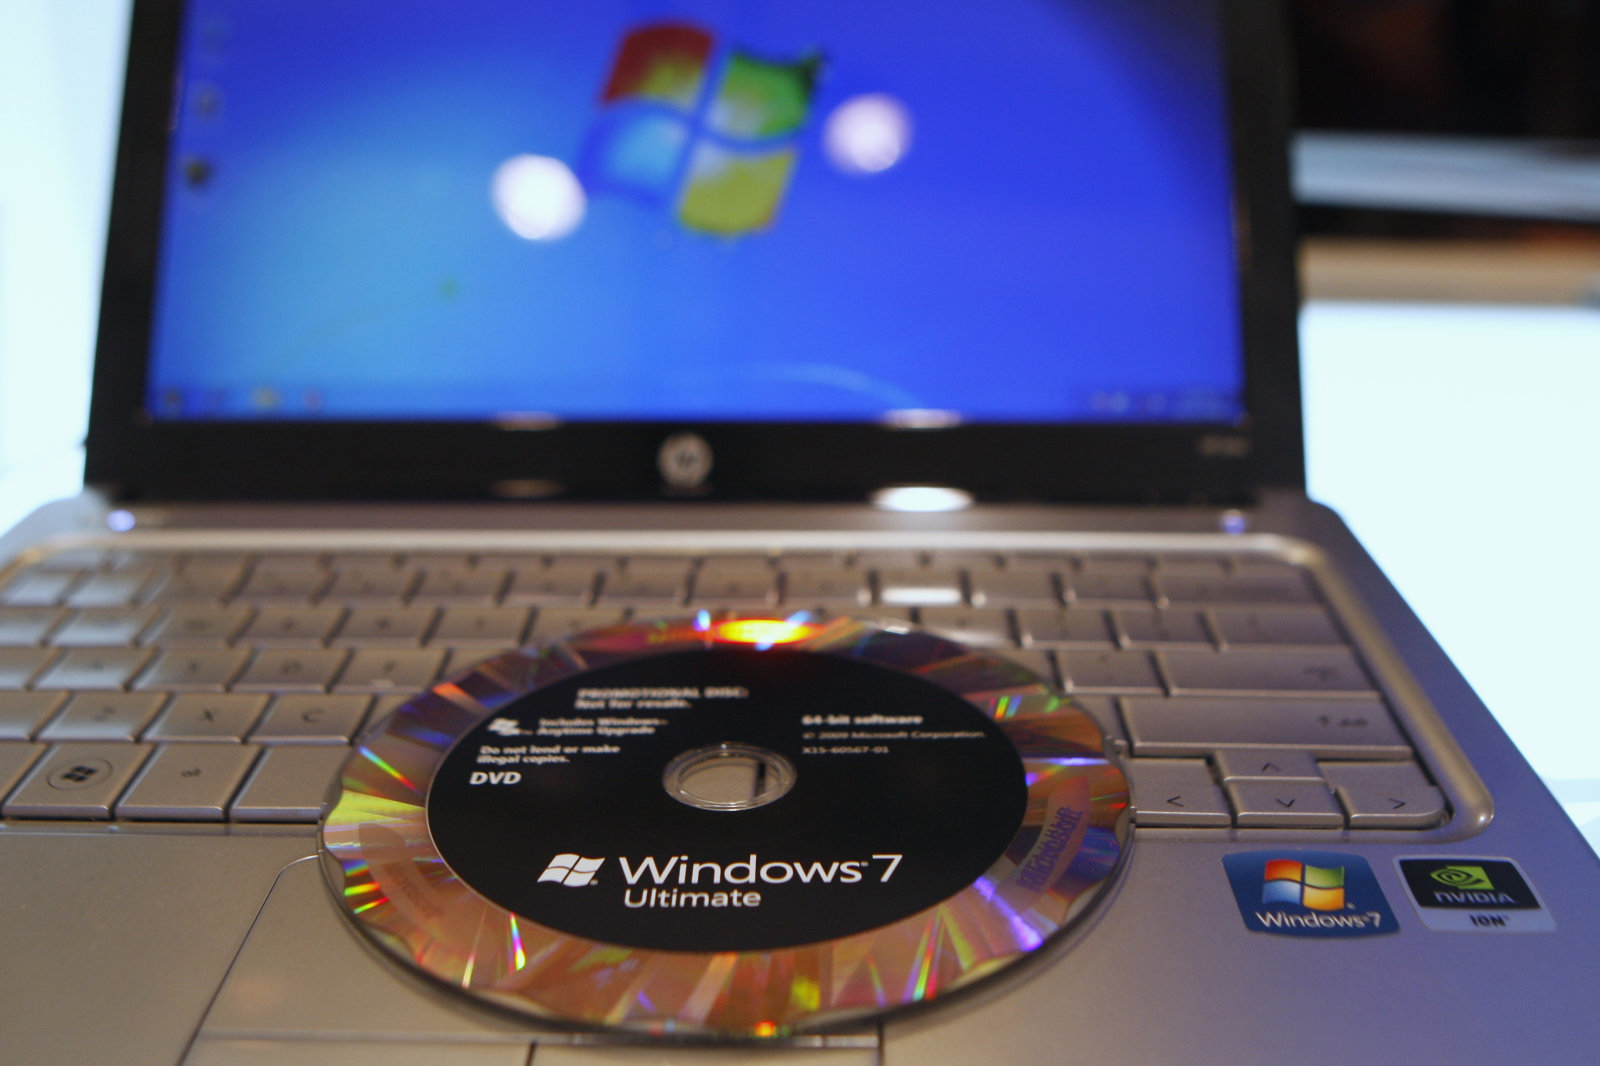 The new Windows 7 operating system installation DVD is pictured on a notebook at the Windows 7 Launch Party in New York